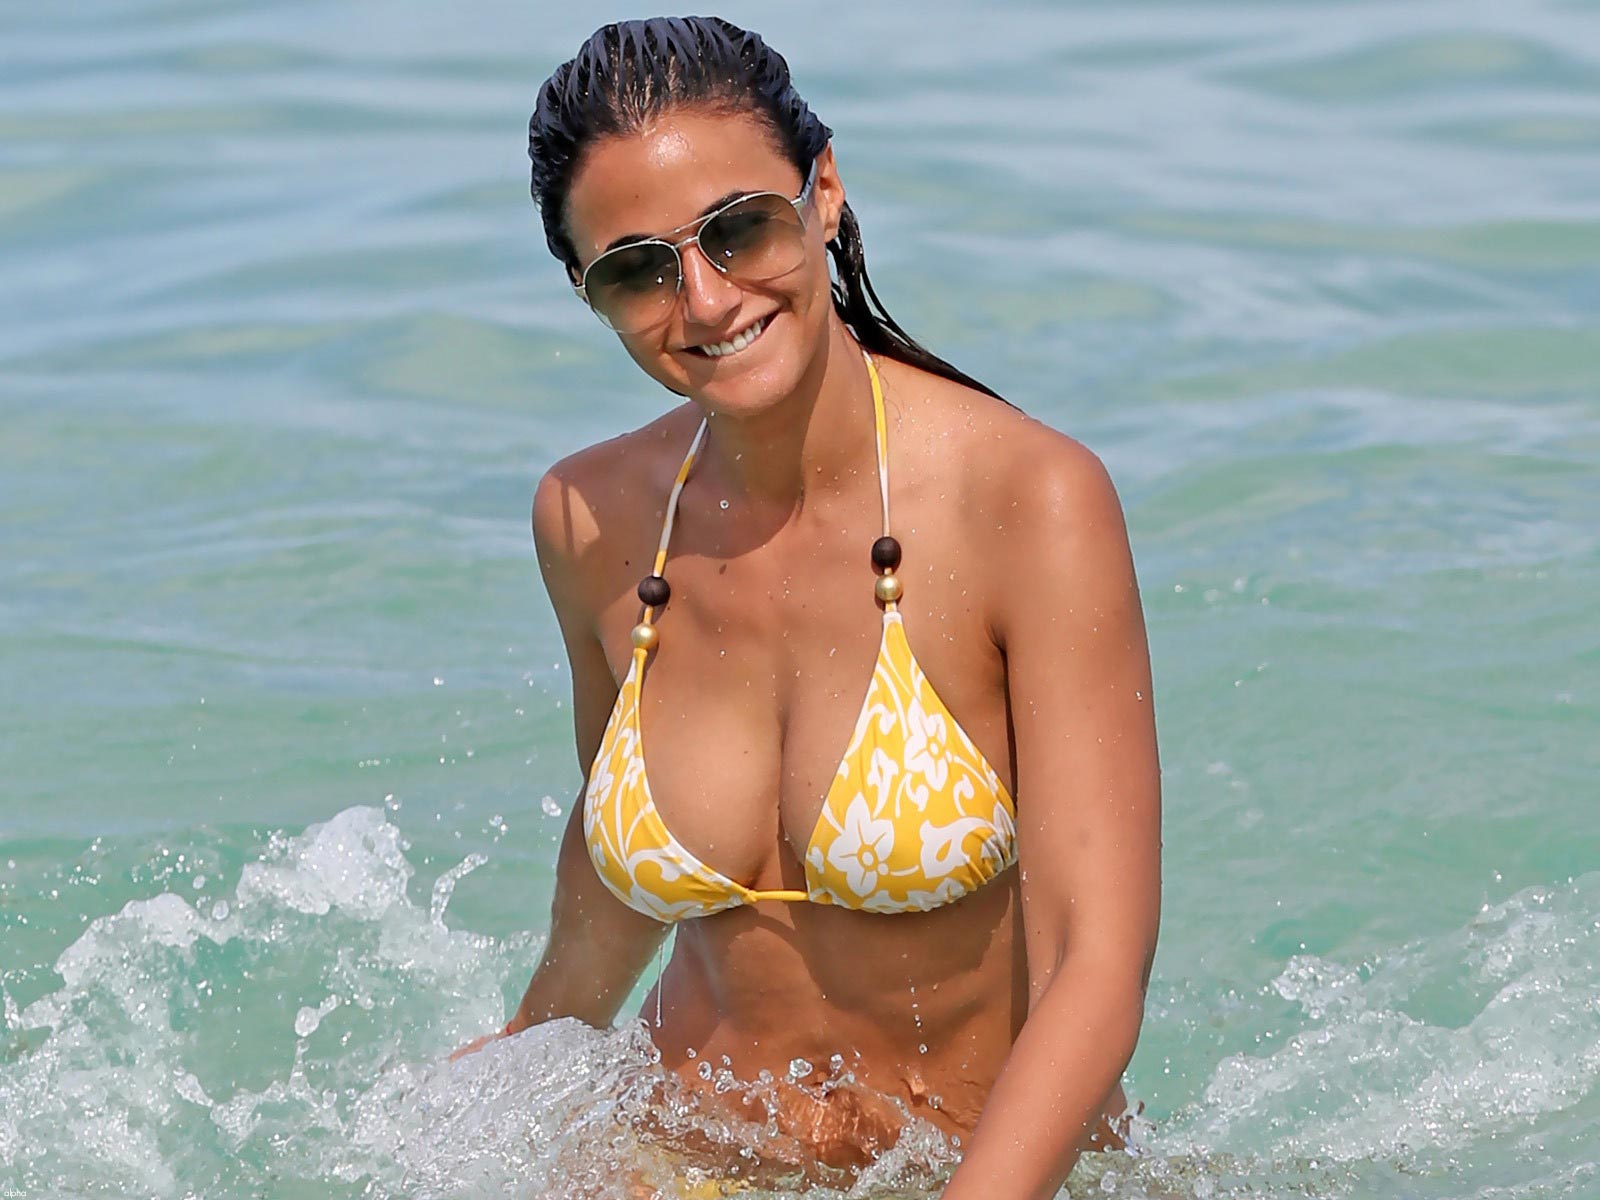 Emmanuelle Chriqui Bikini Wallpapers 2 Celebmafia